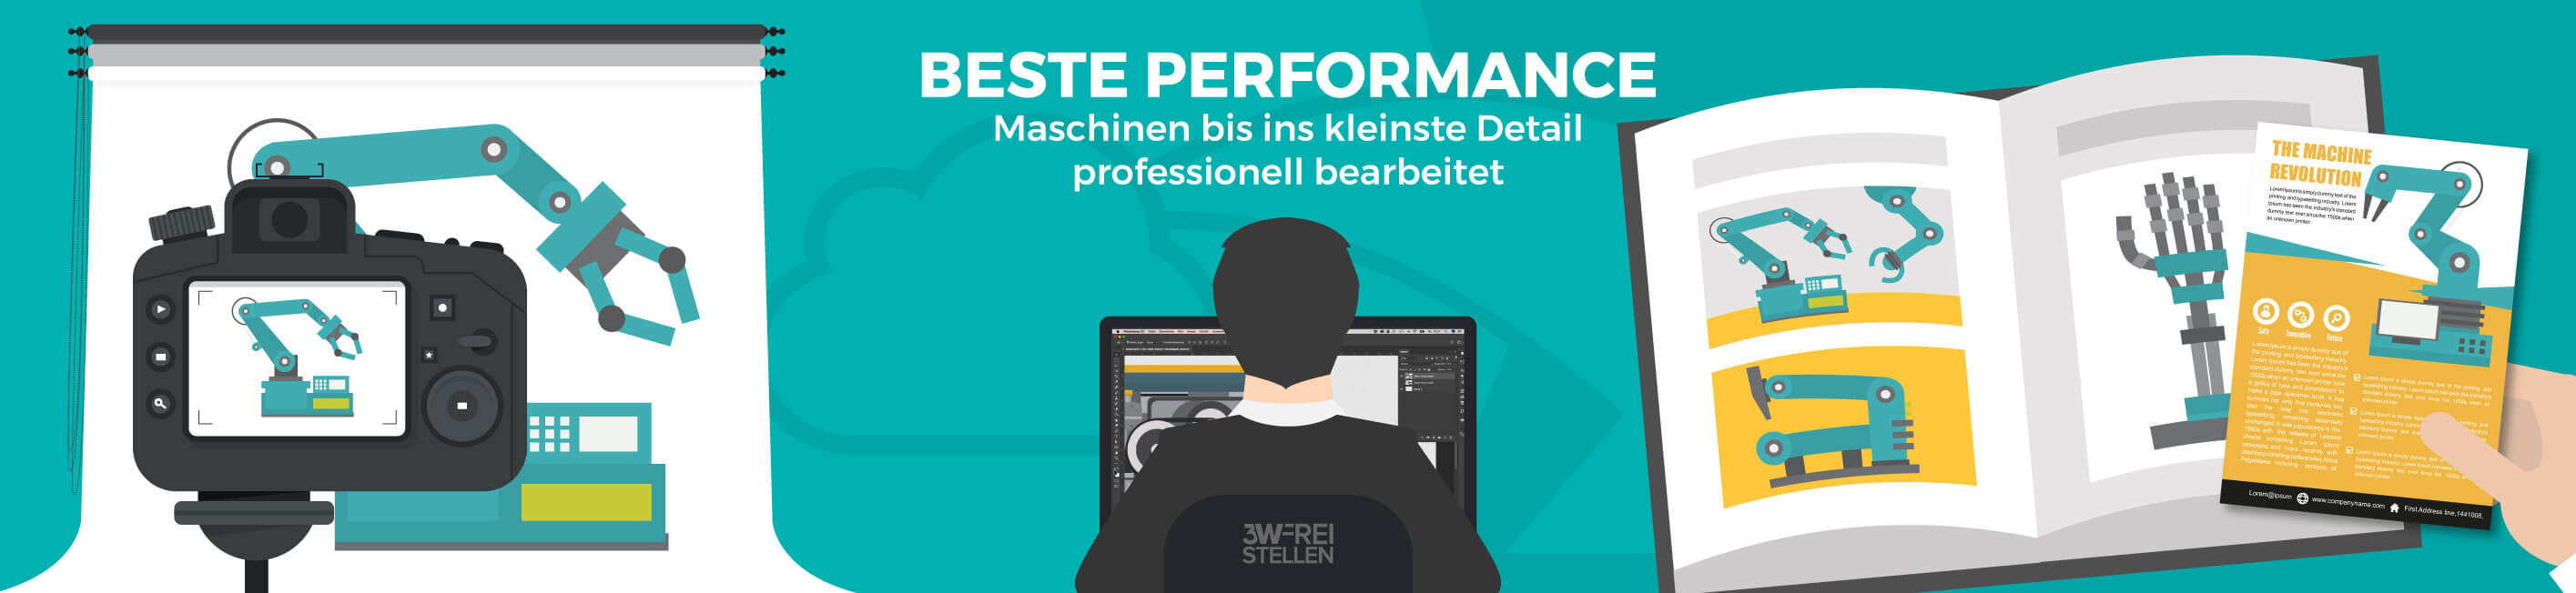 Vektorgrafik Maschinen Beste Performance Deutsch